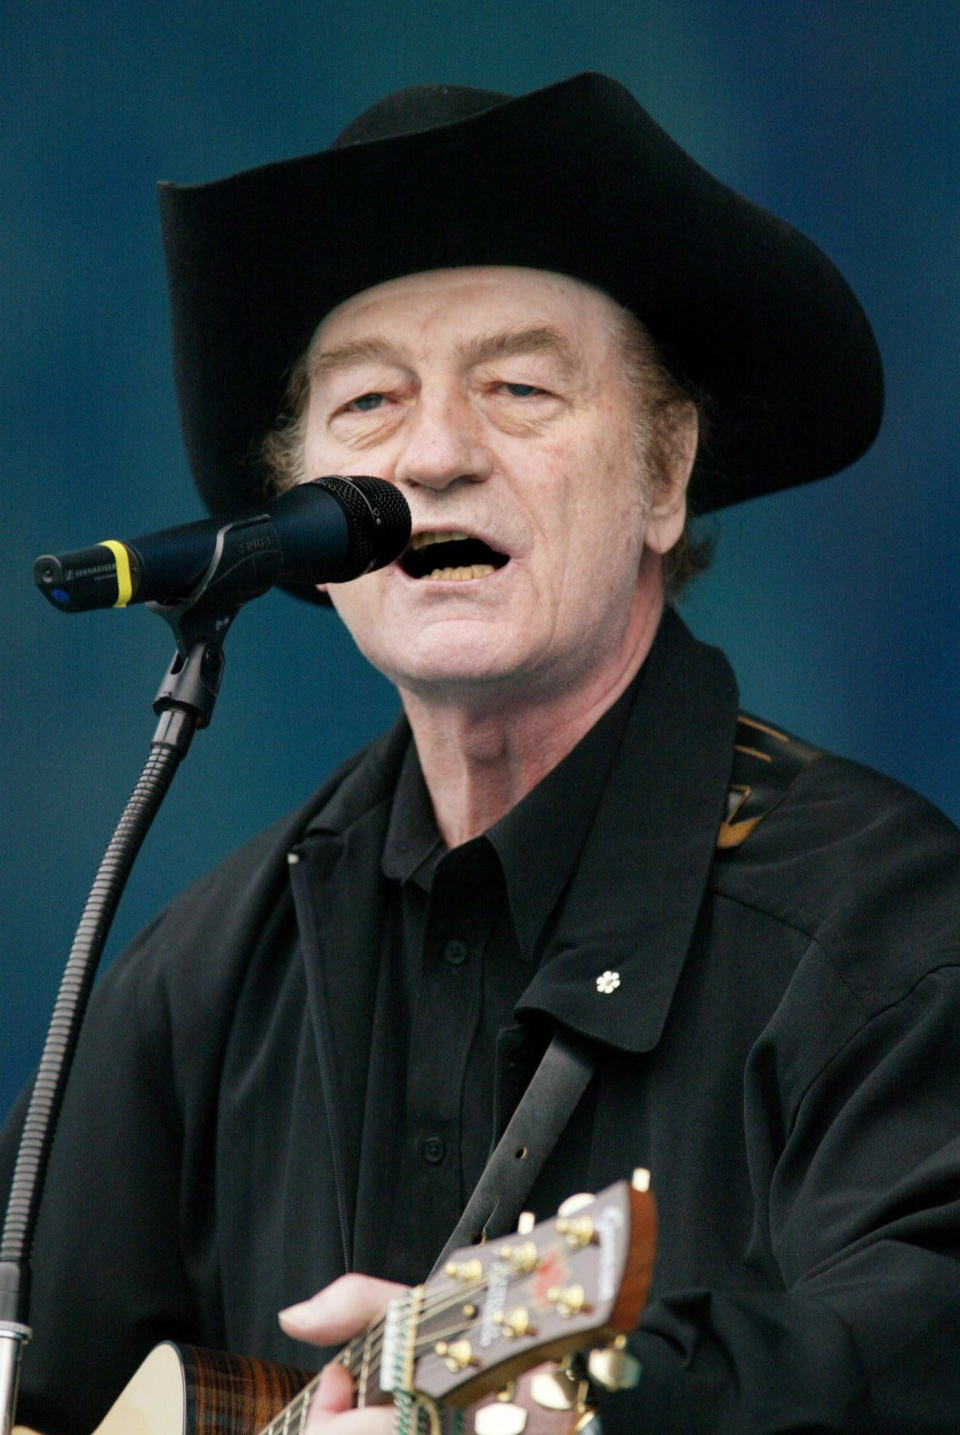 Stompin Tom Connors Net Worth